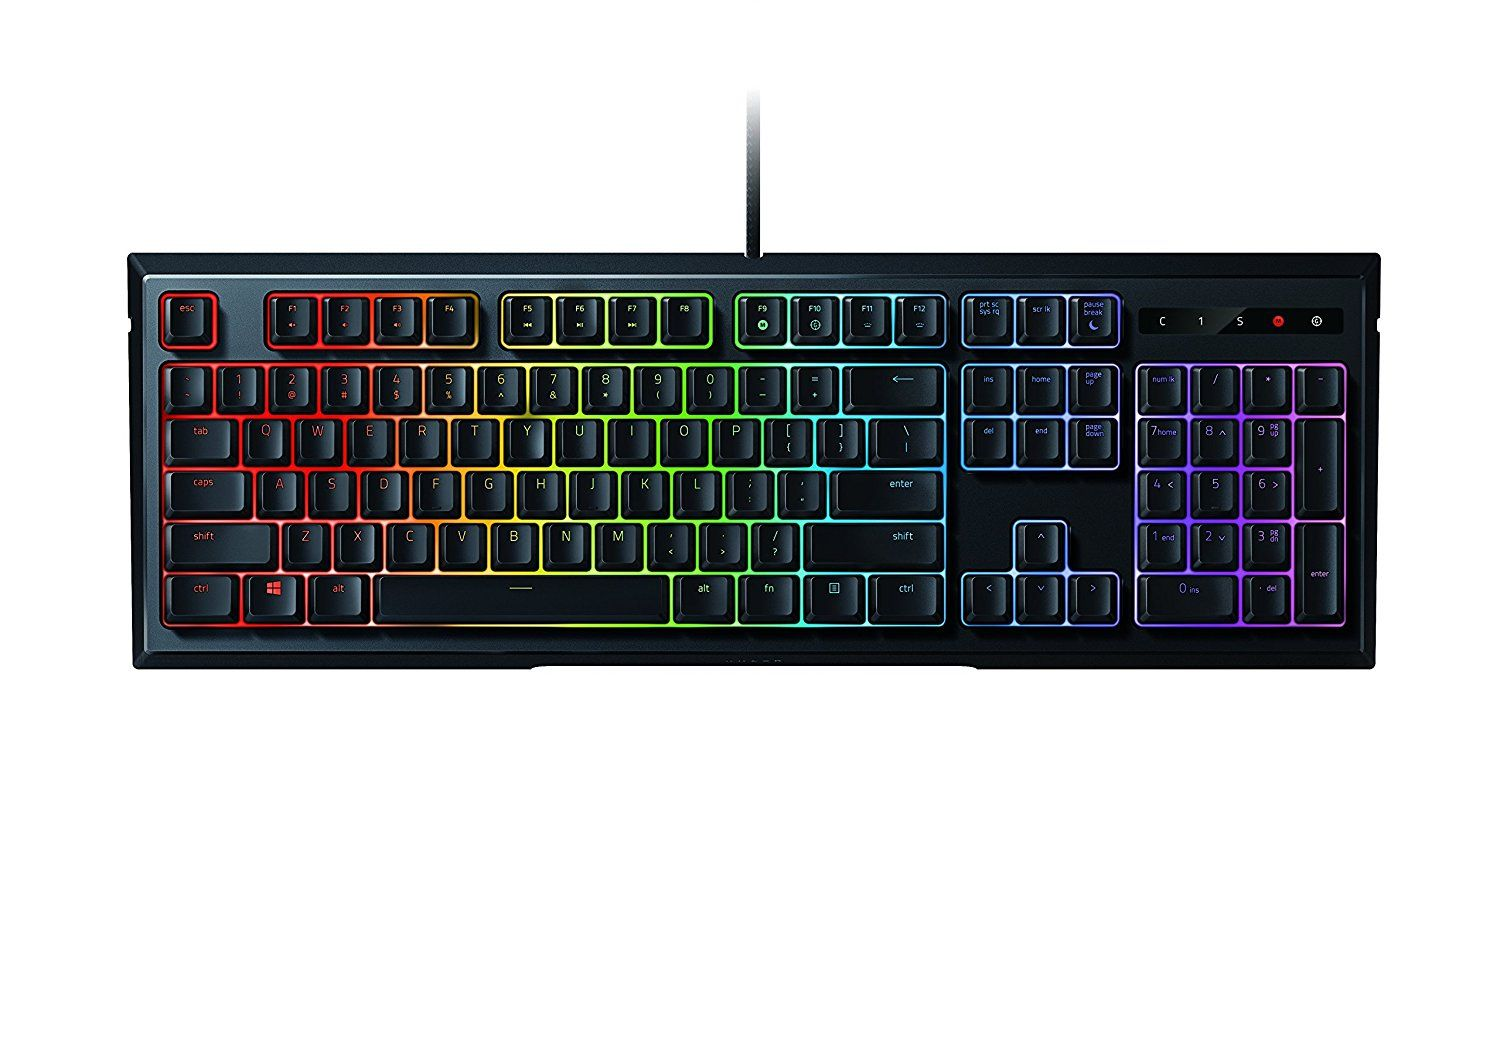 Keyboard image by Esportsetup on Which is the best CS GO